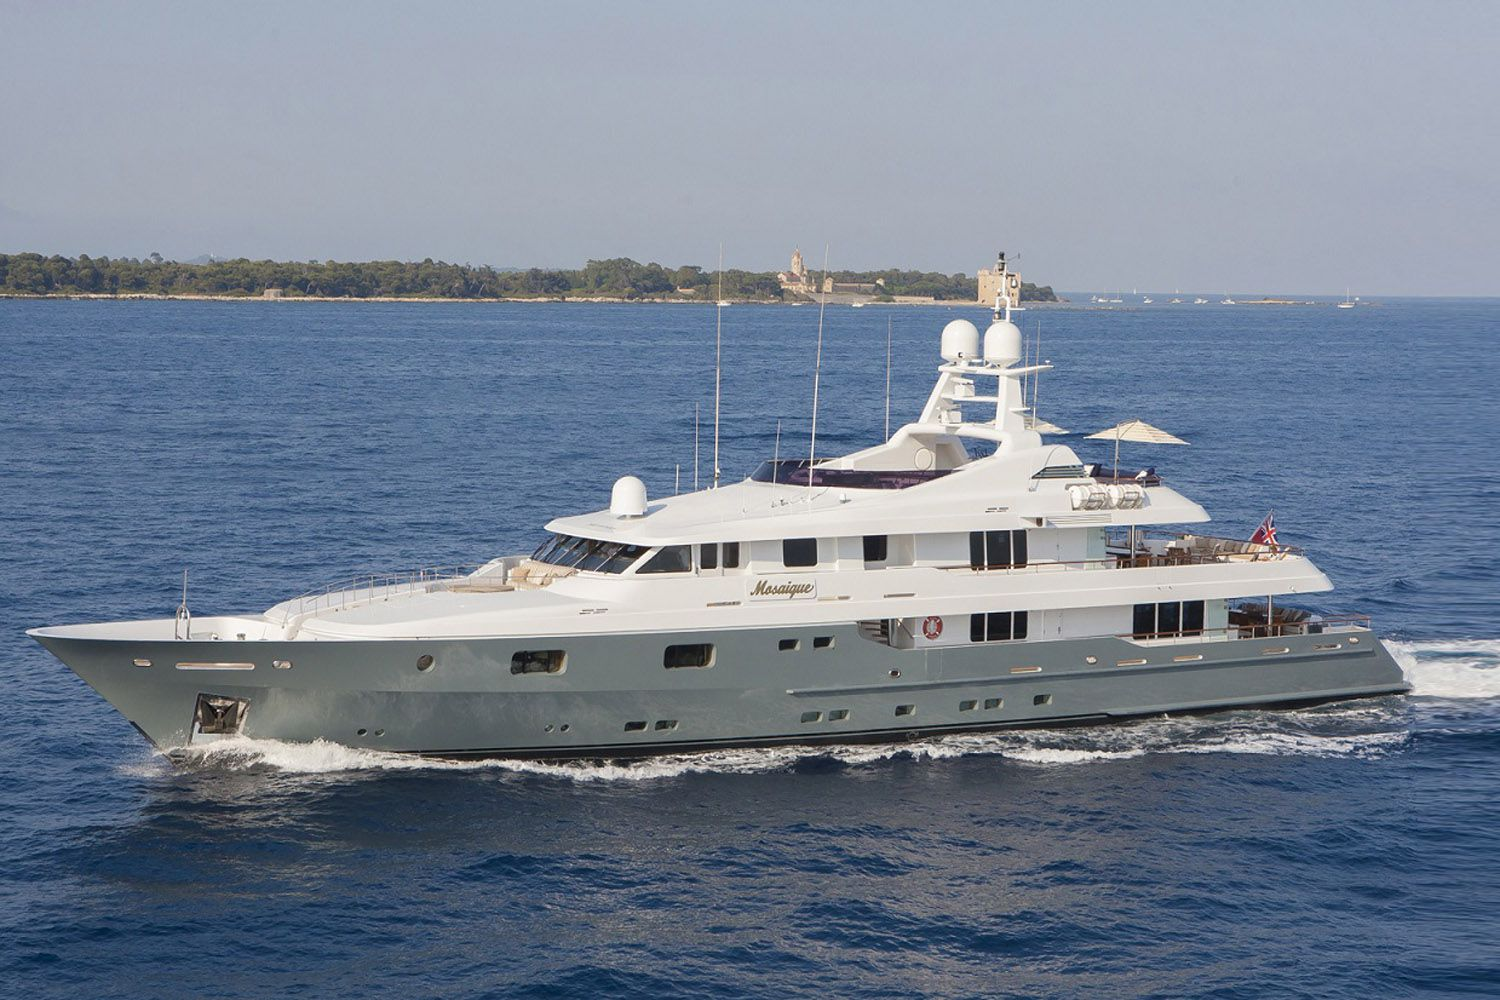 Mosaique Yacht Charter Details Turquoise Yachts